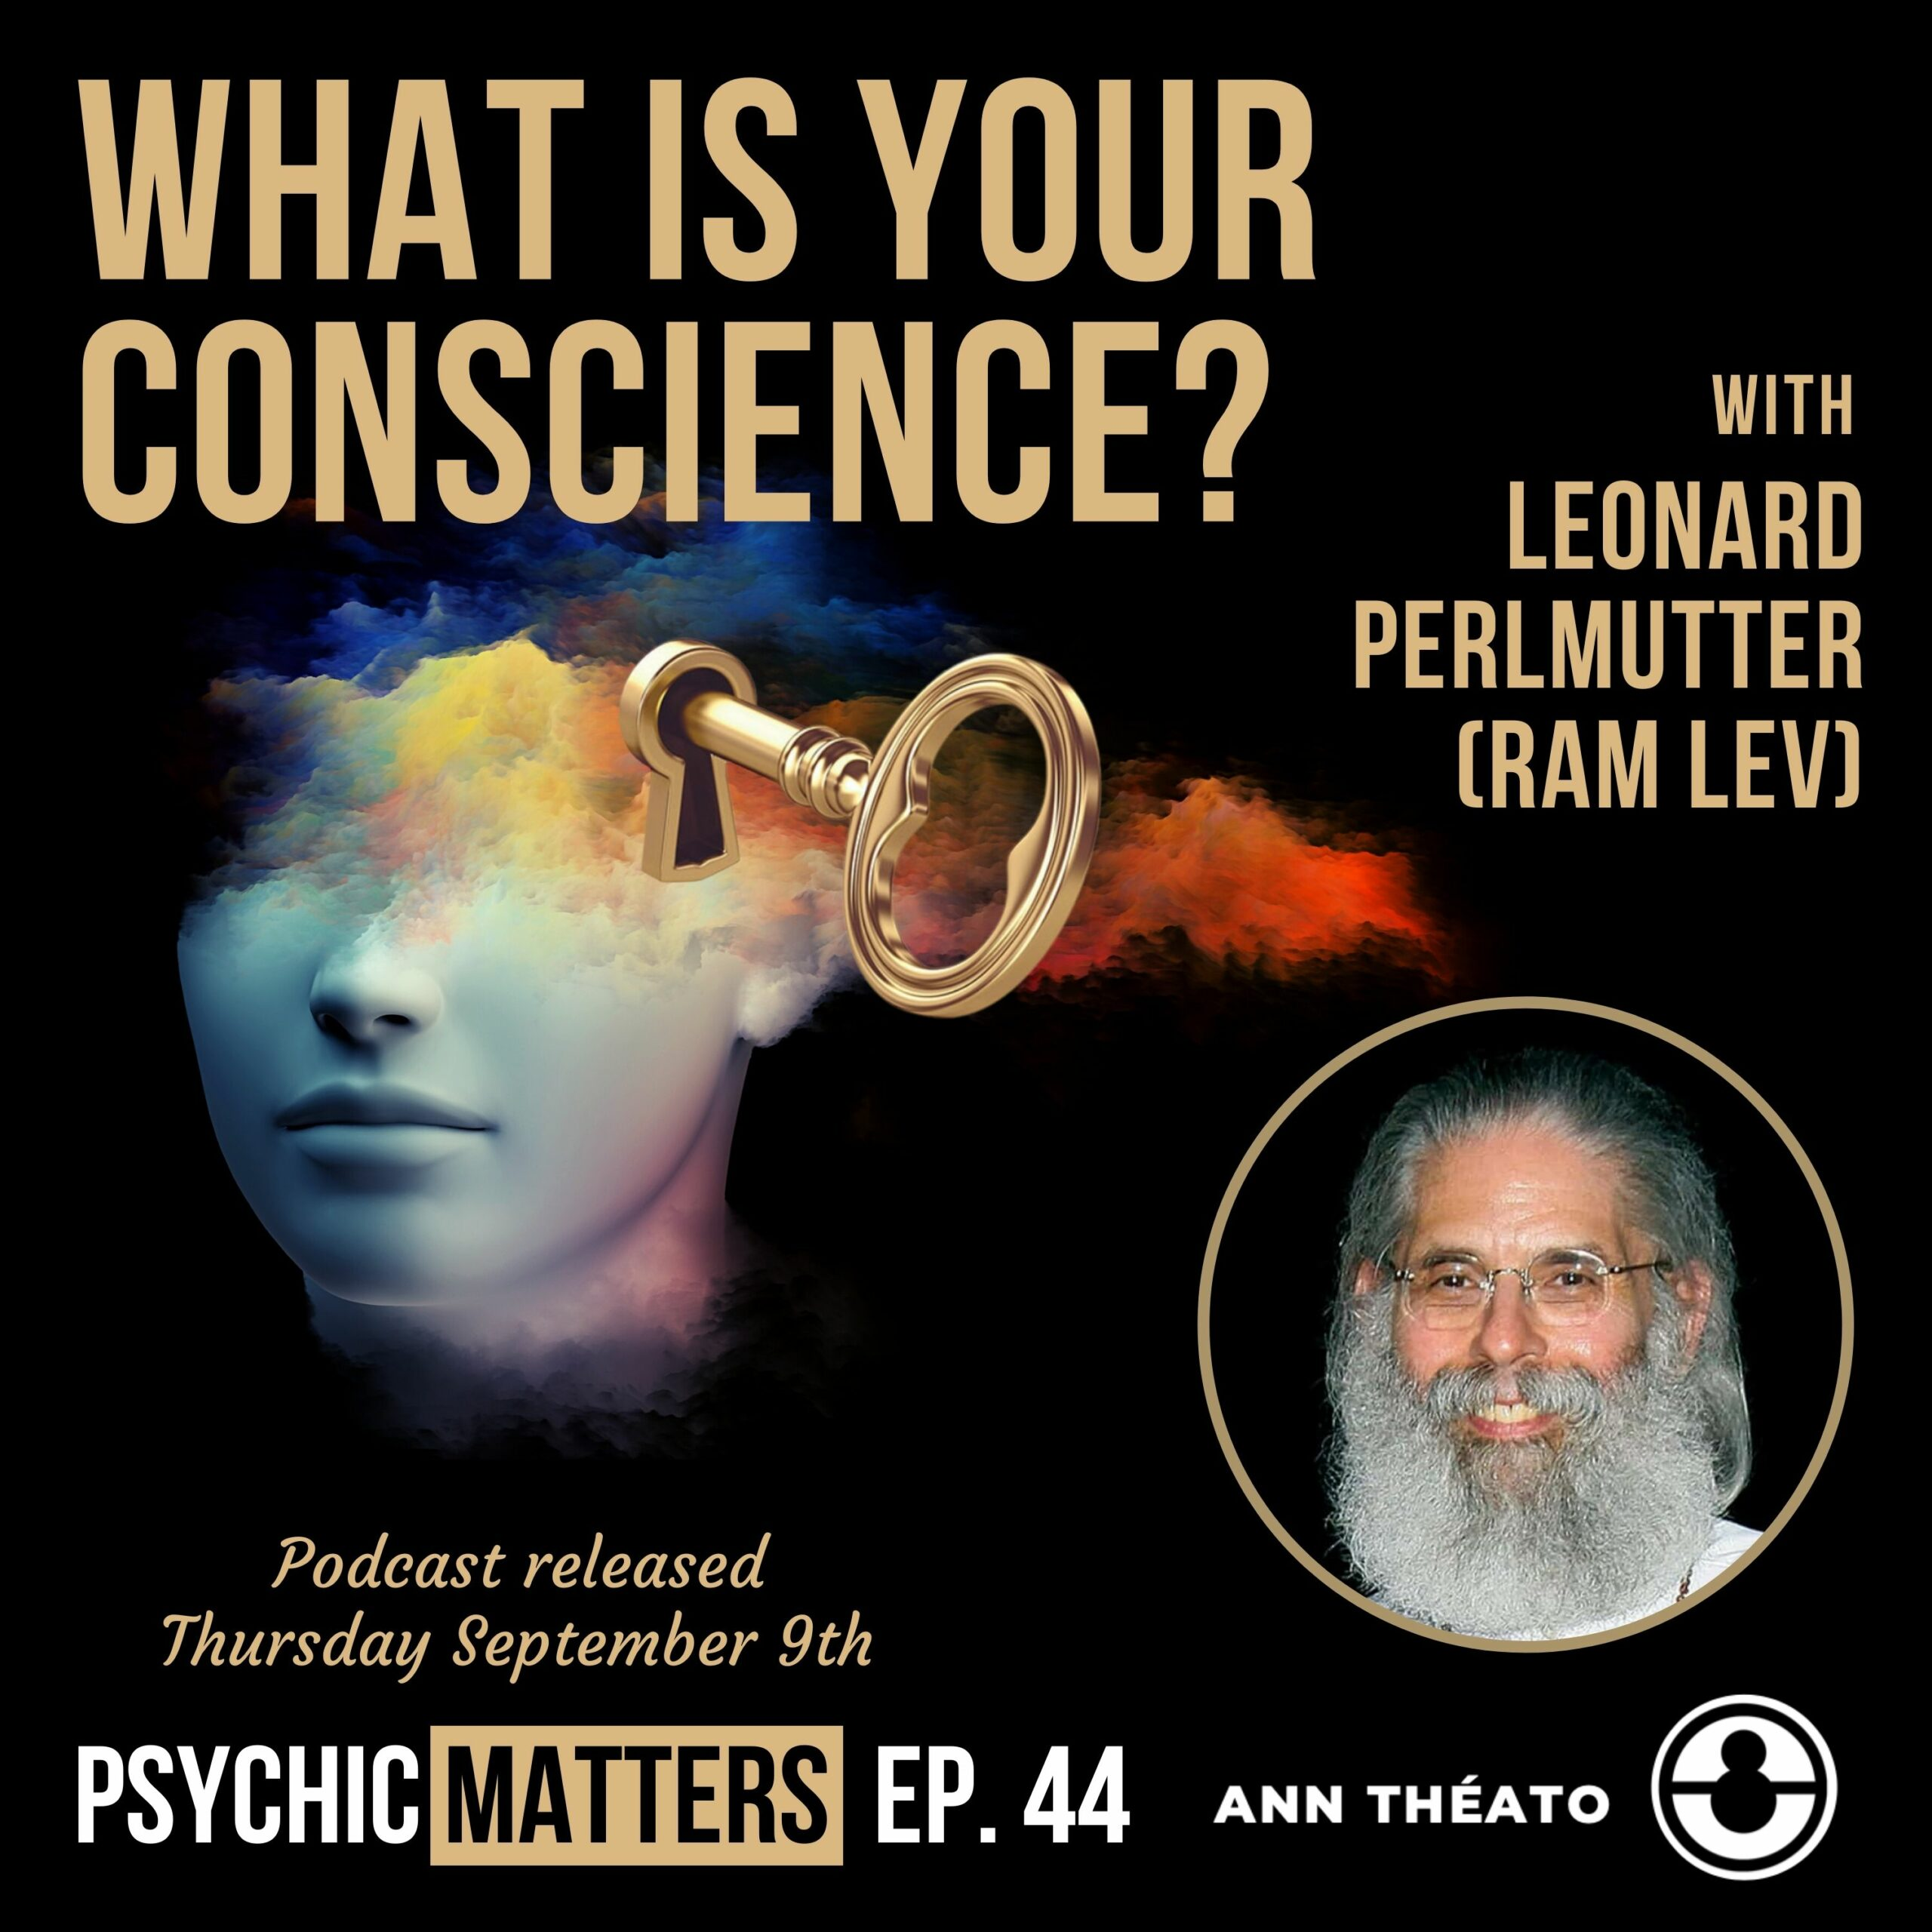 Episode 44 - What Is Your Conscience?